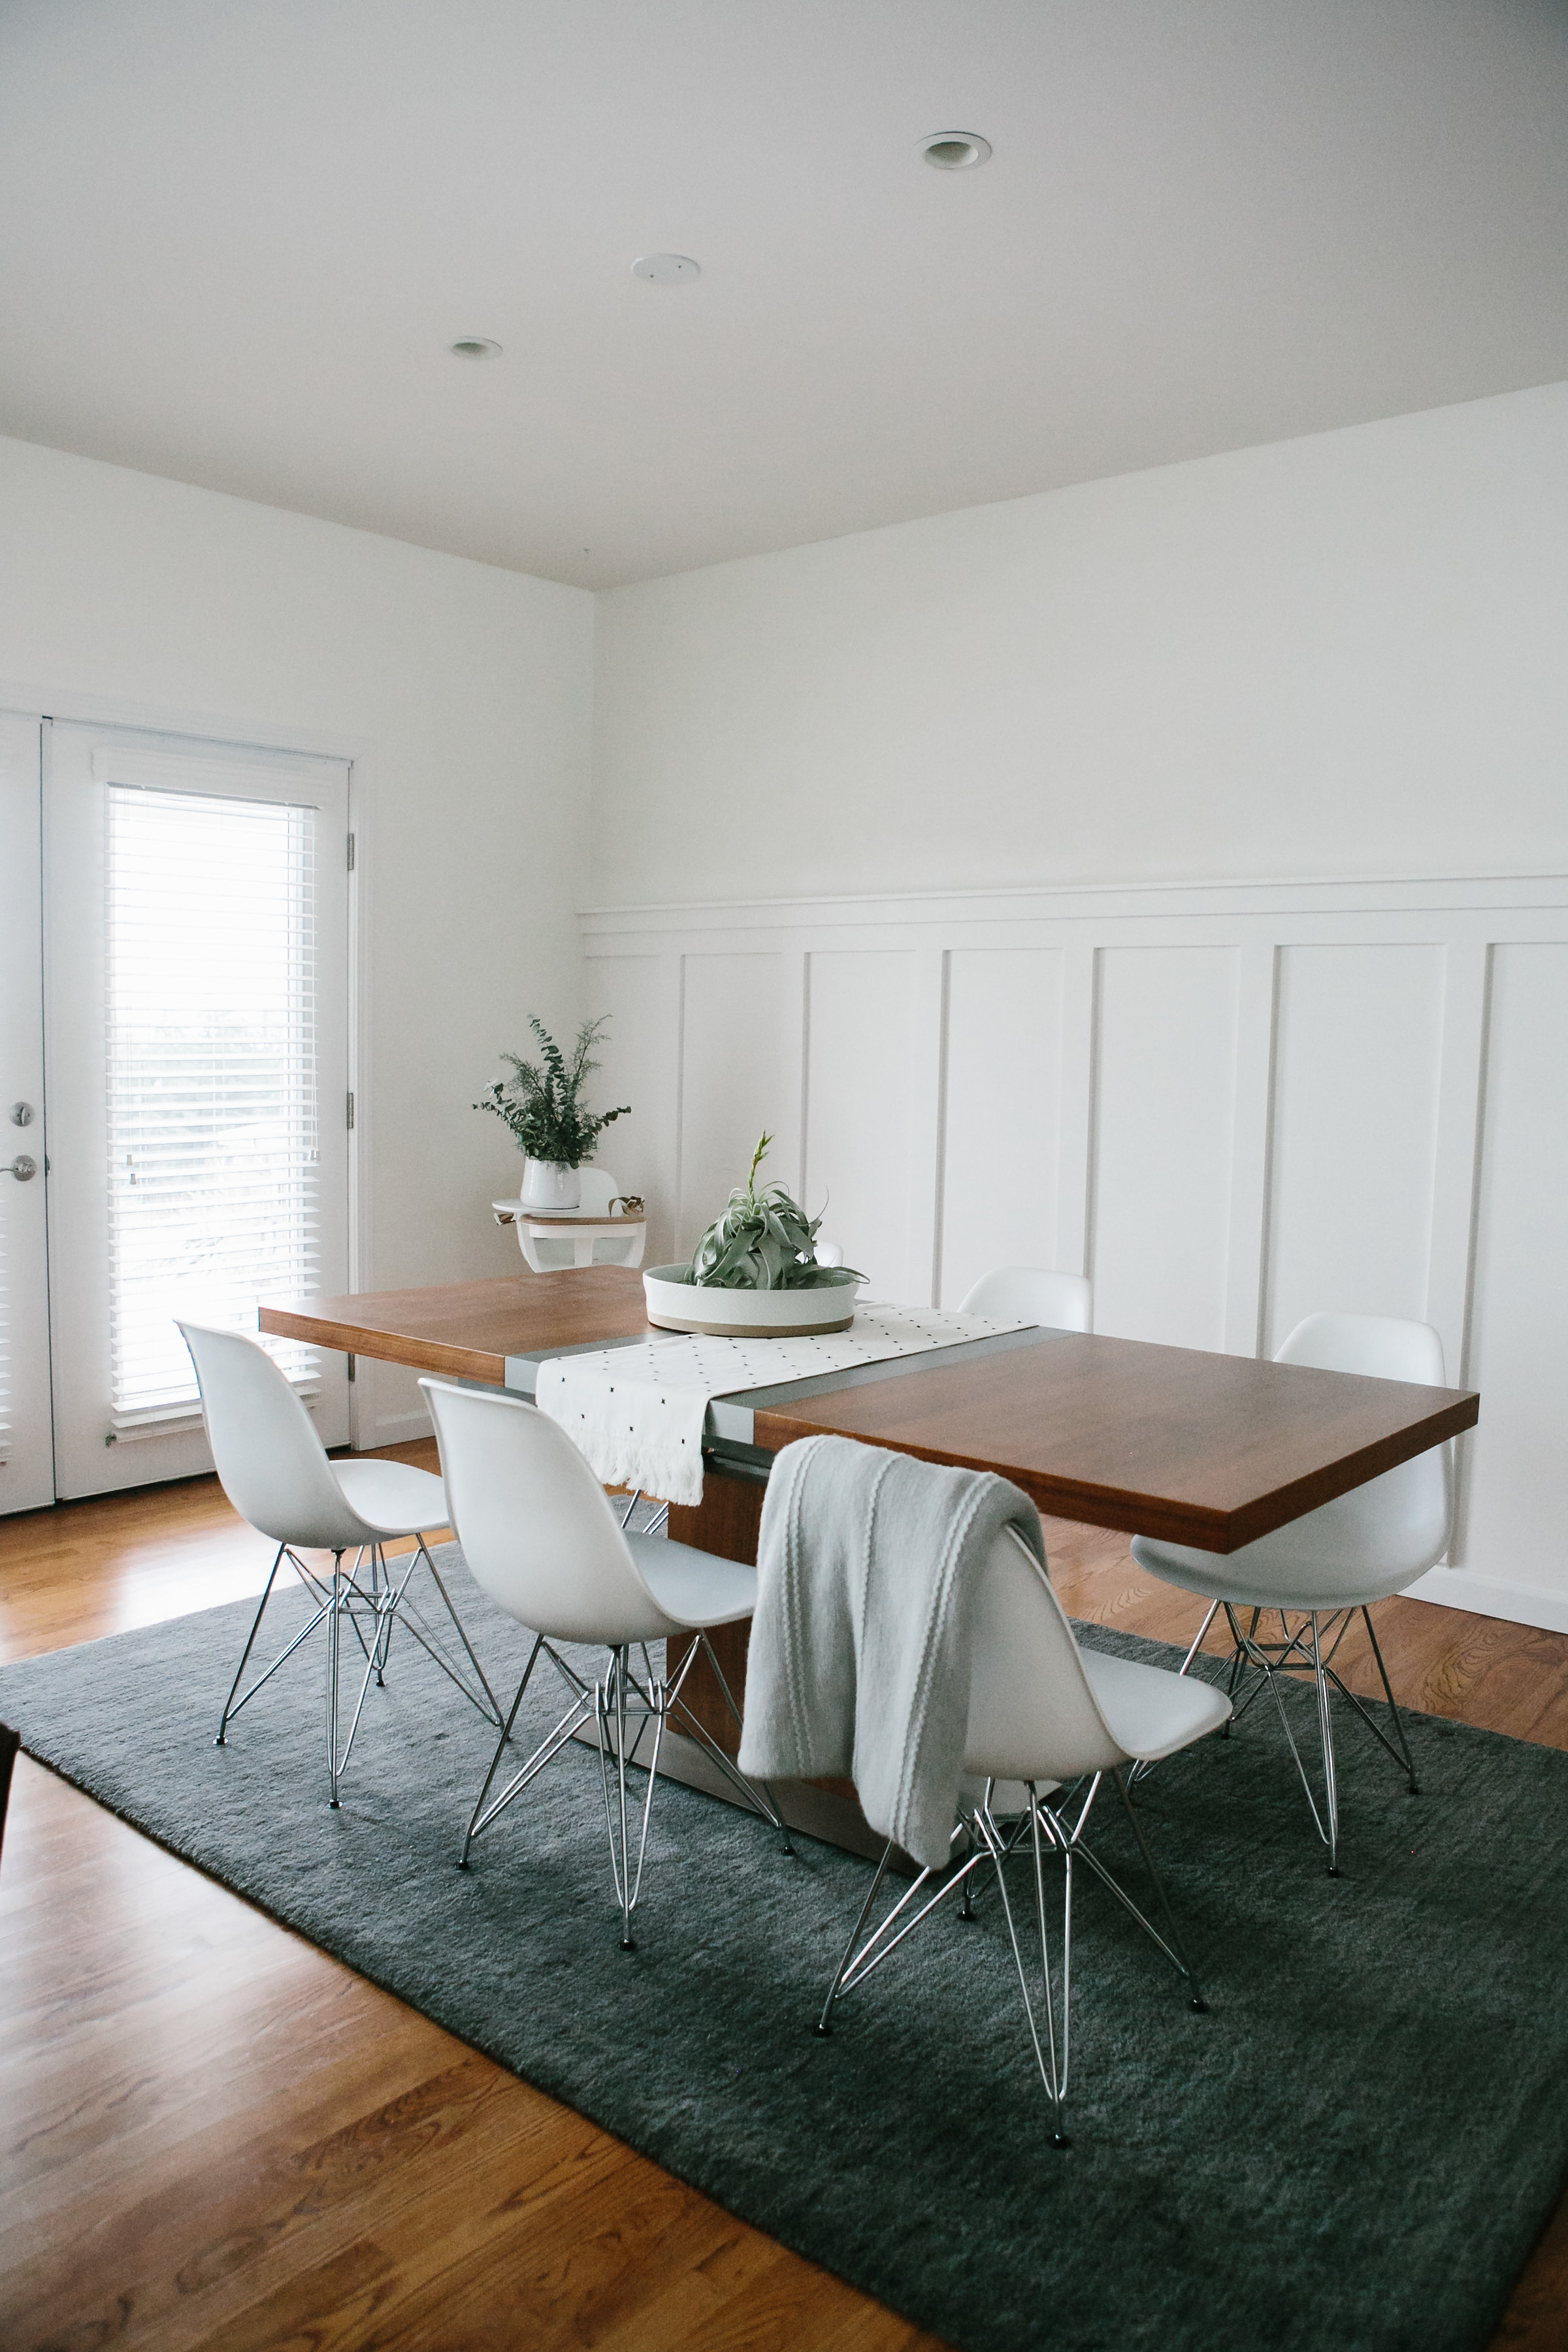 A sleek modern dining table with mid century modern dining chairs and a gray rug.